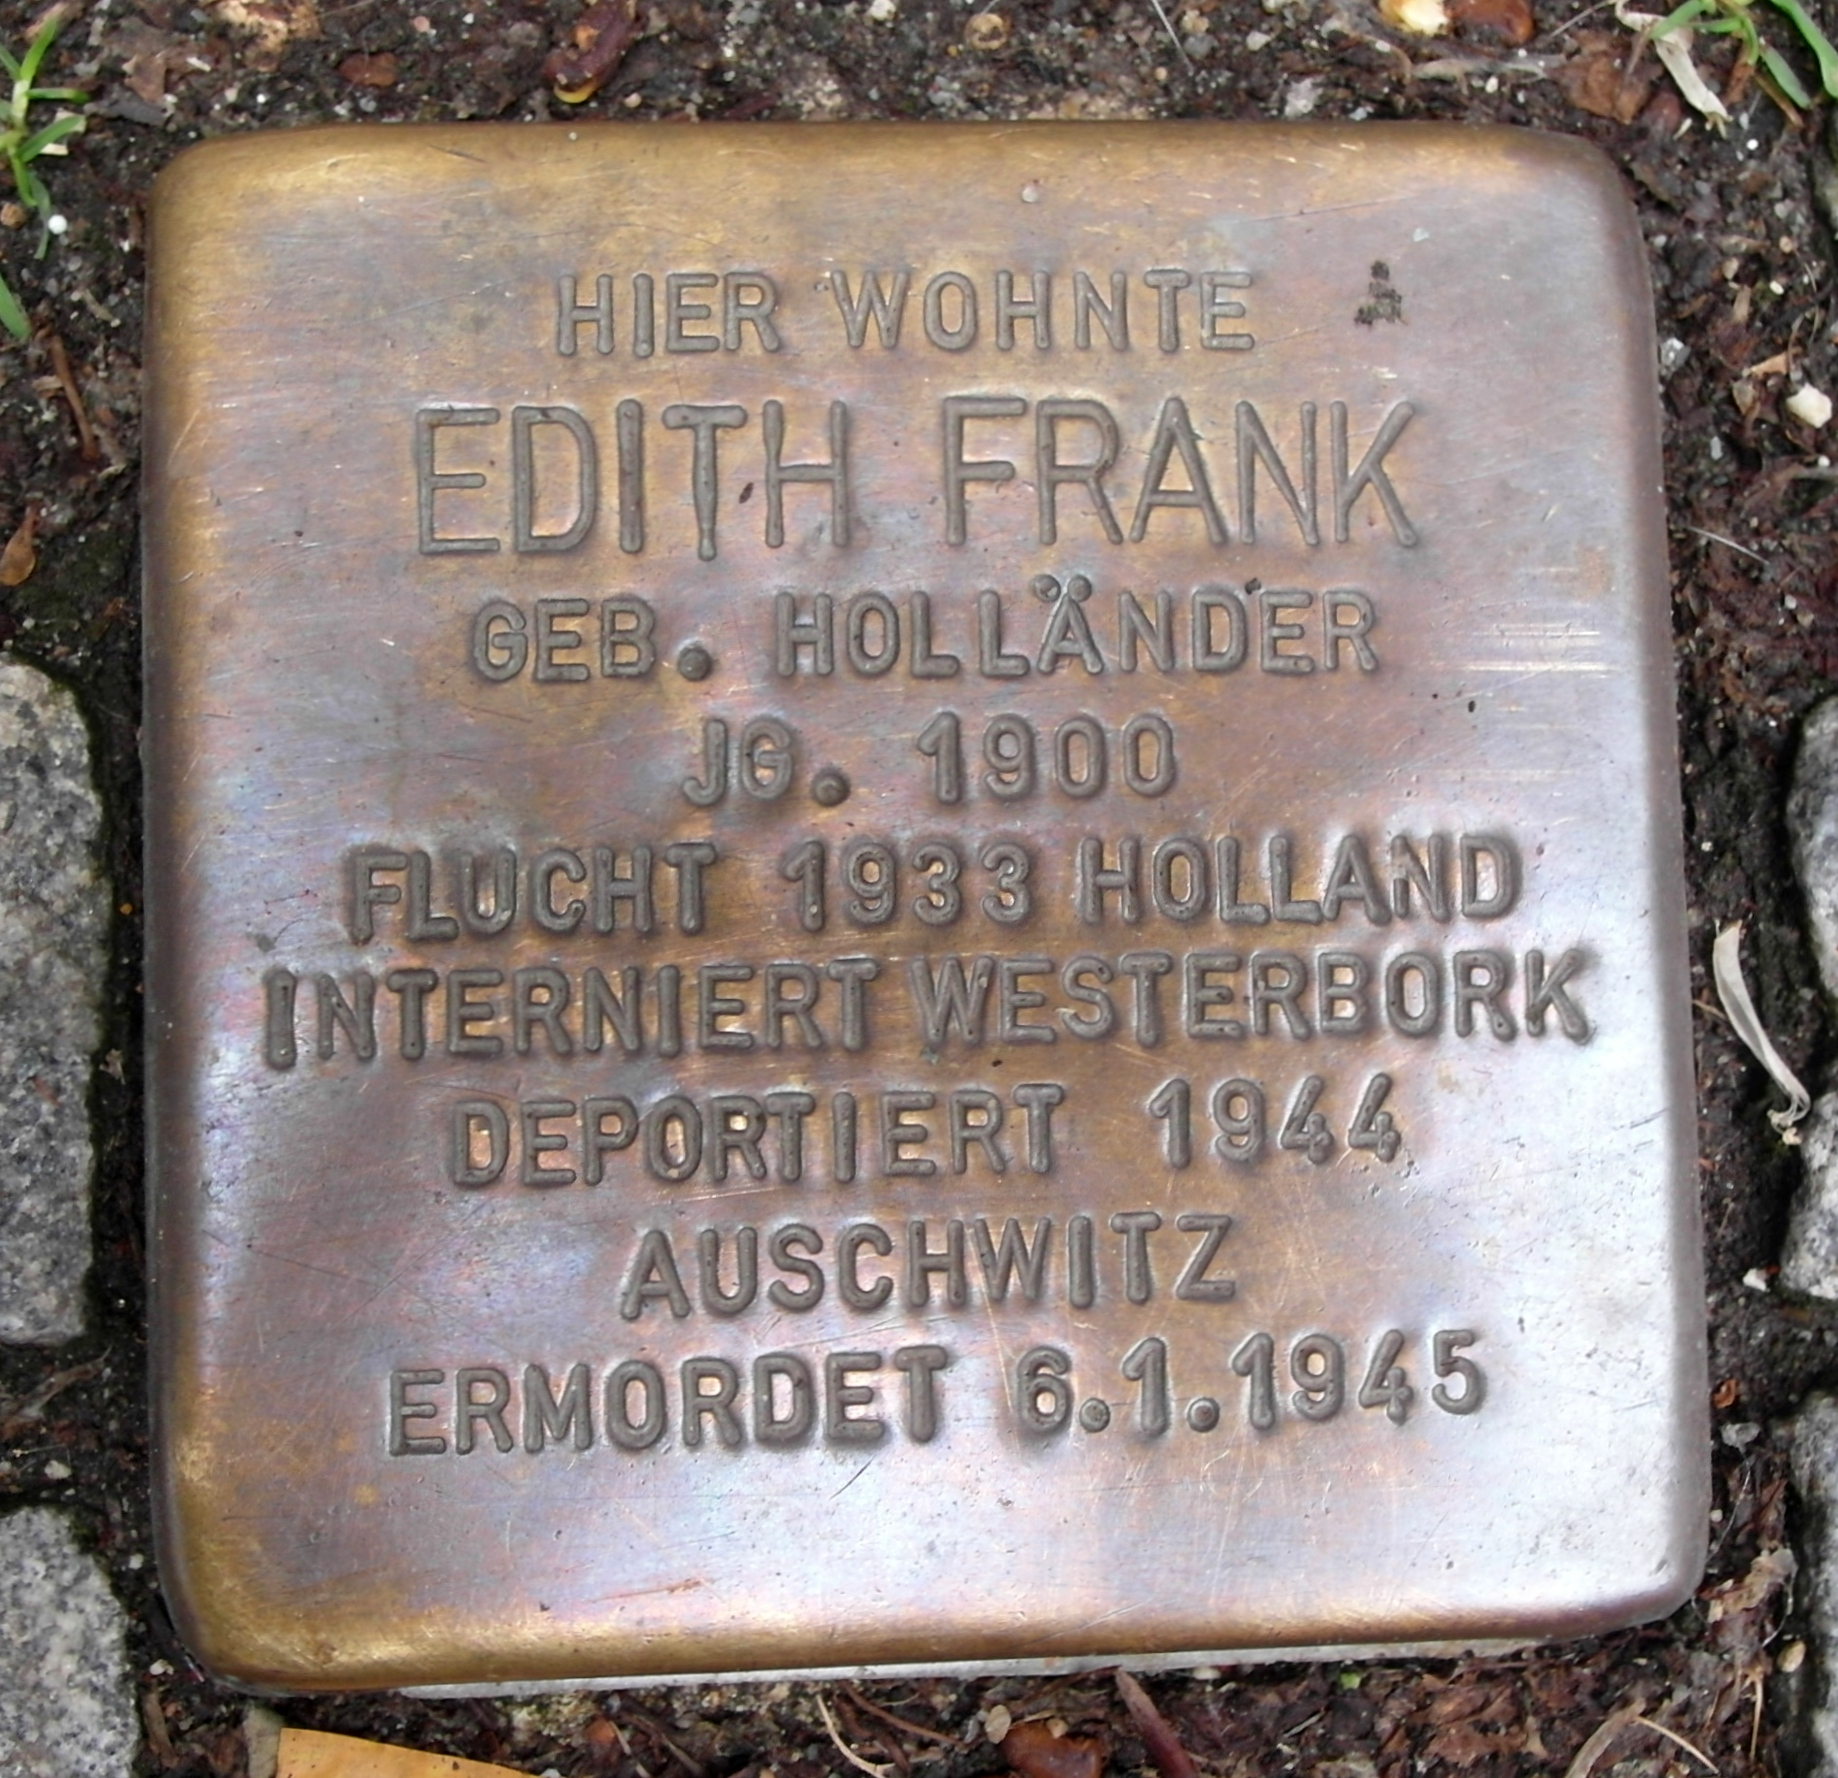 https://upload.wikimedia.org/wikipedia/commons/6/63/EdithFrankStolpersteinAachen_8223.jpg